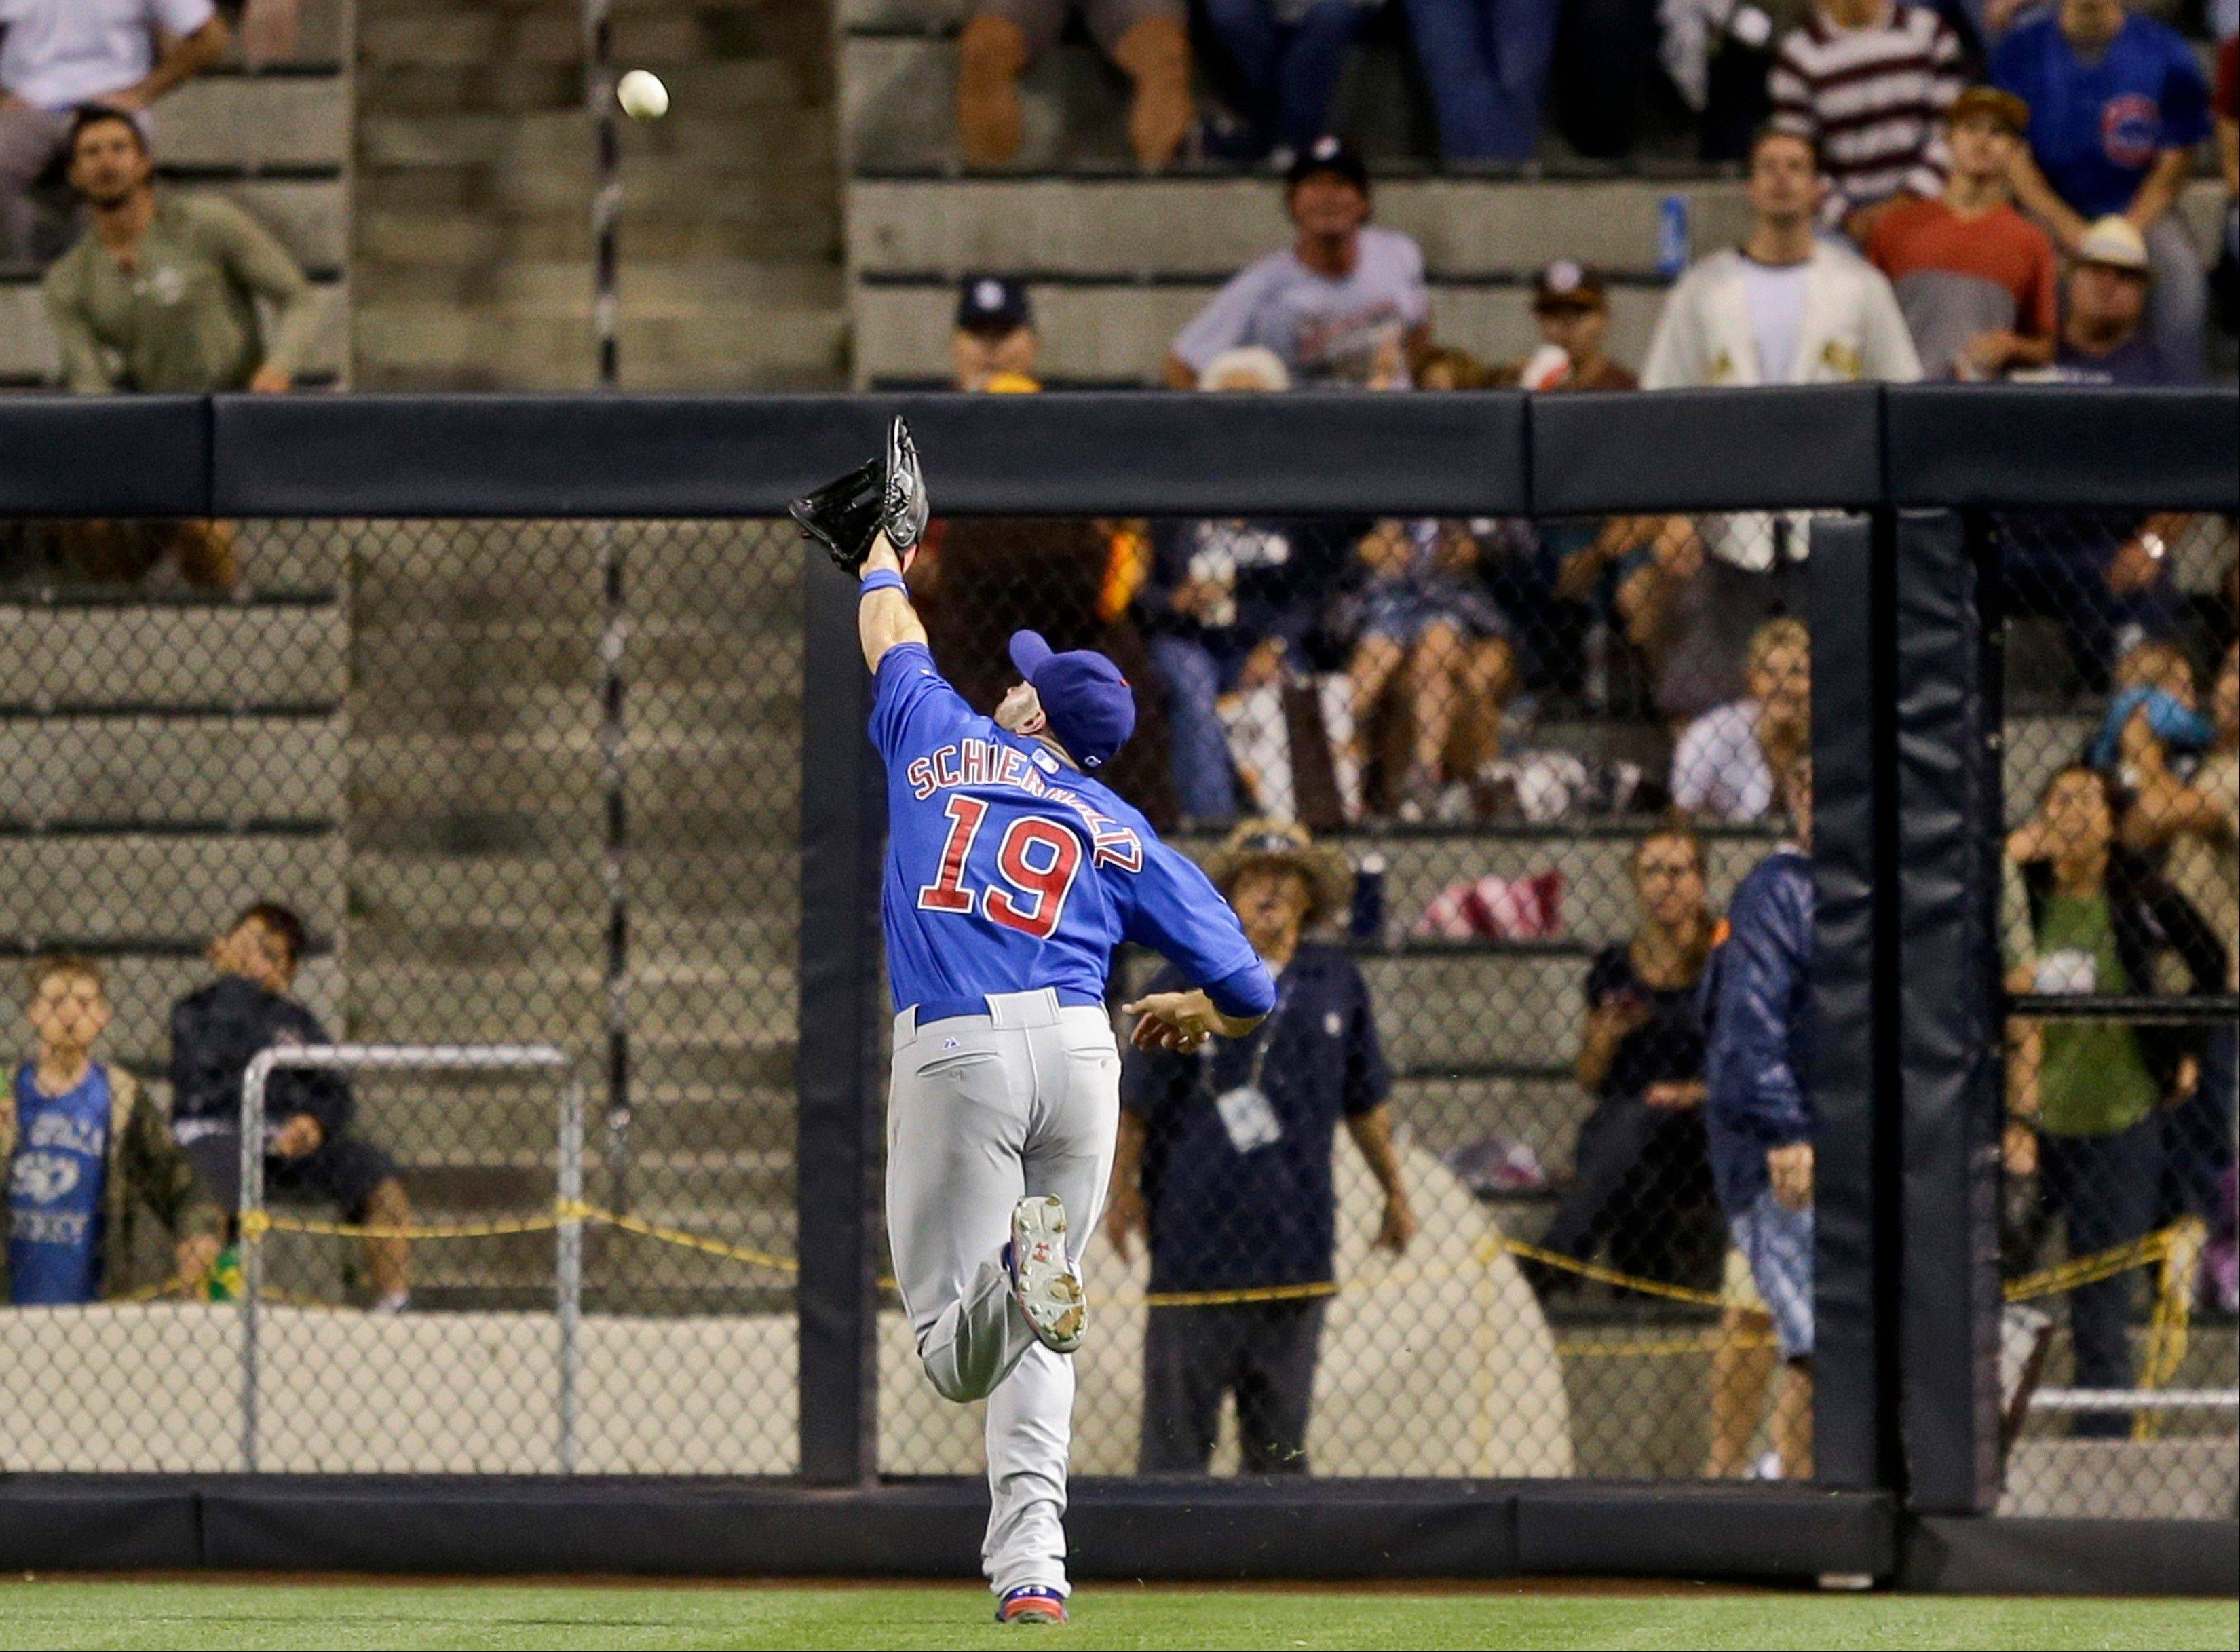 Cubs right fielder Nate Schierholtz can't reach a triple hit by the Padres' Logan Forsythe in the sixth inning Friday night in San Diego.